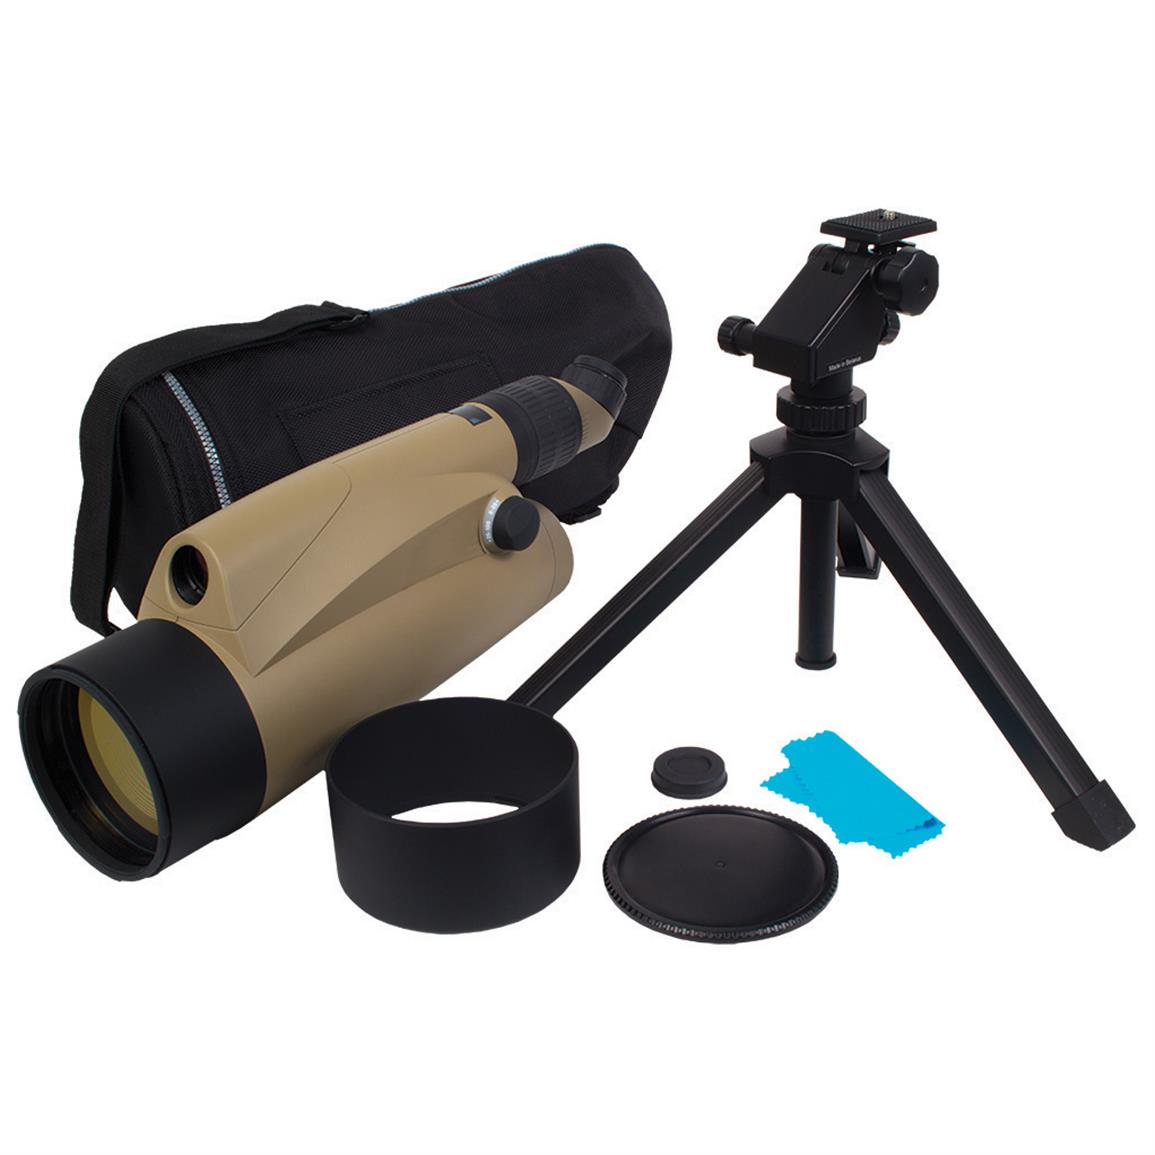 Includes tripod and carry case